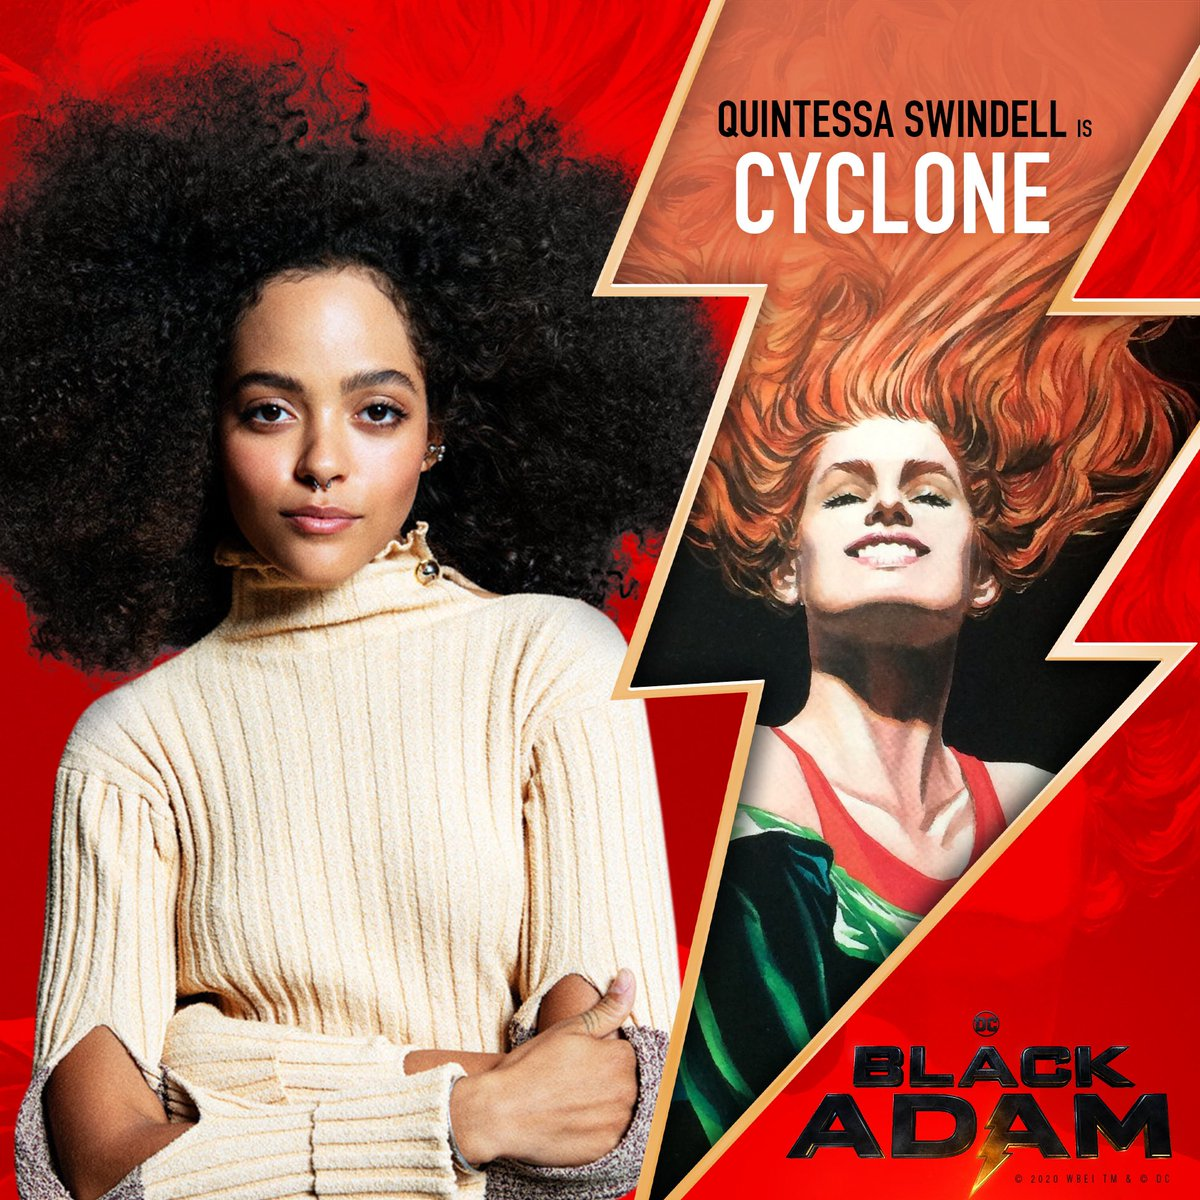 Ready to rumble⚡️💪🏾 A pleasure to officially welcome, Quintessa Swindell to our BLACK ADAM cast.  They'll be taking on the role of CYCLONE.  Can't wait to work with them and we ready to rumble in the DC jungle.  #bringit #cyclone🌪  #blackadam⚡️ Production starts spring 2021